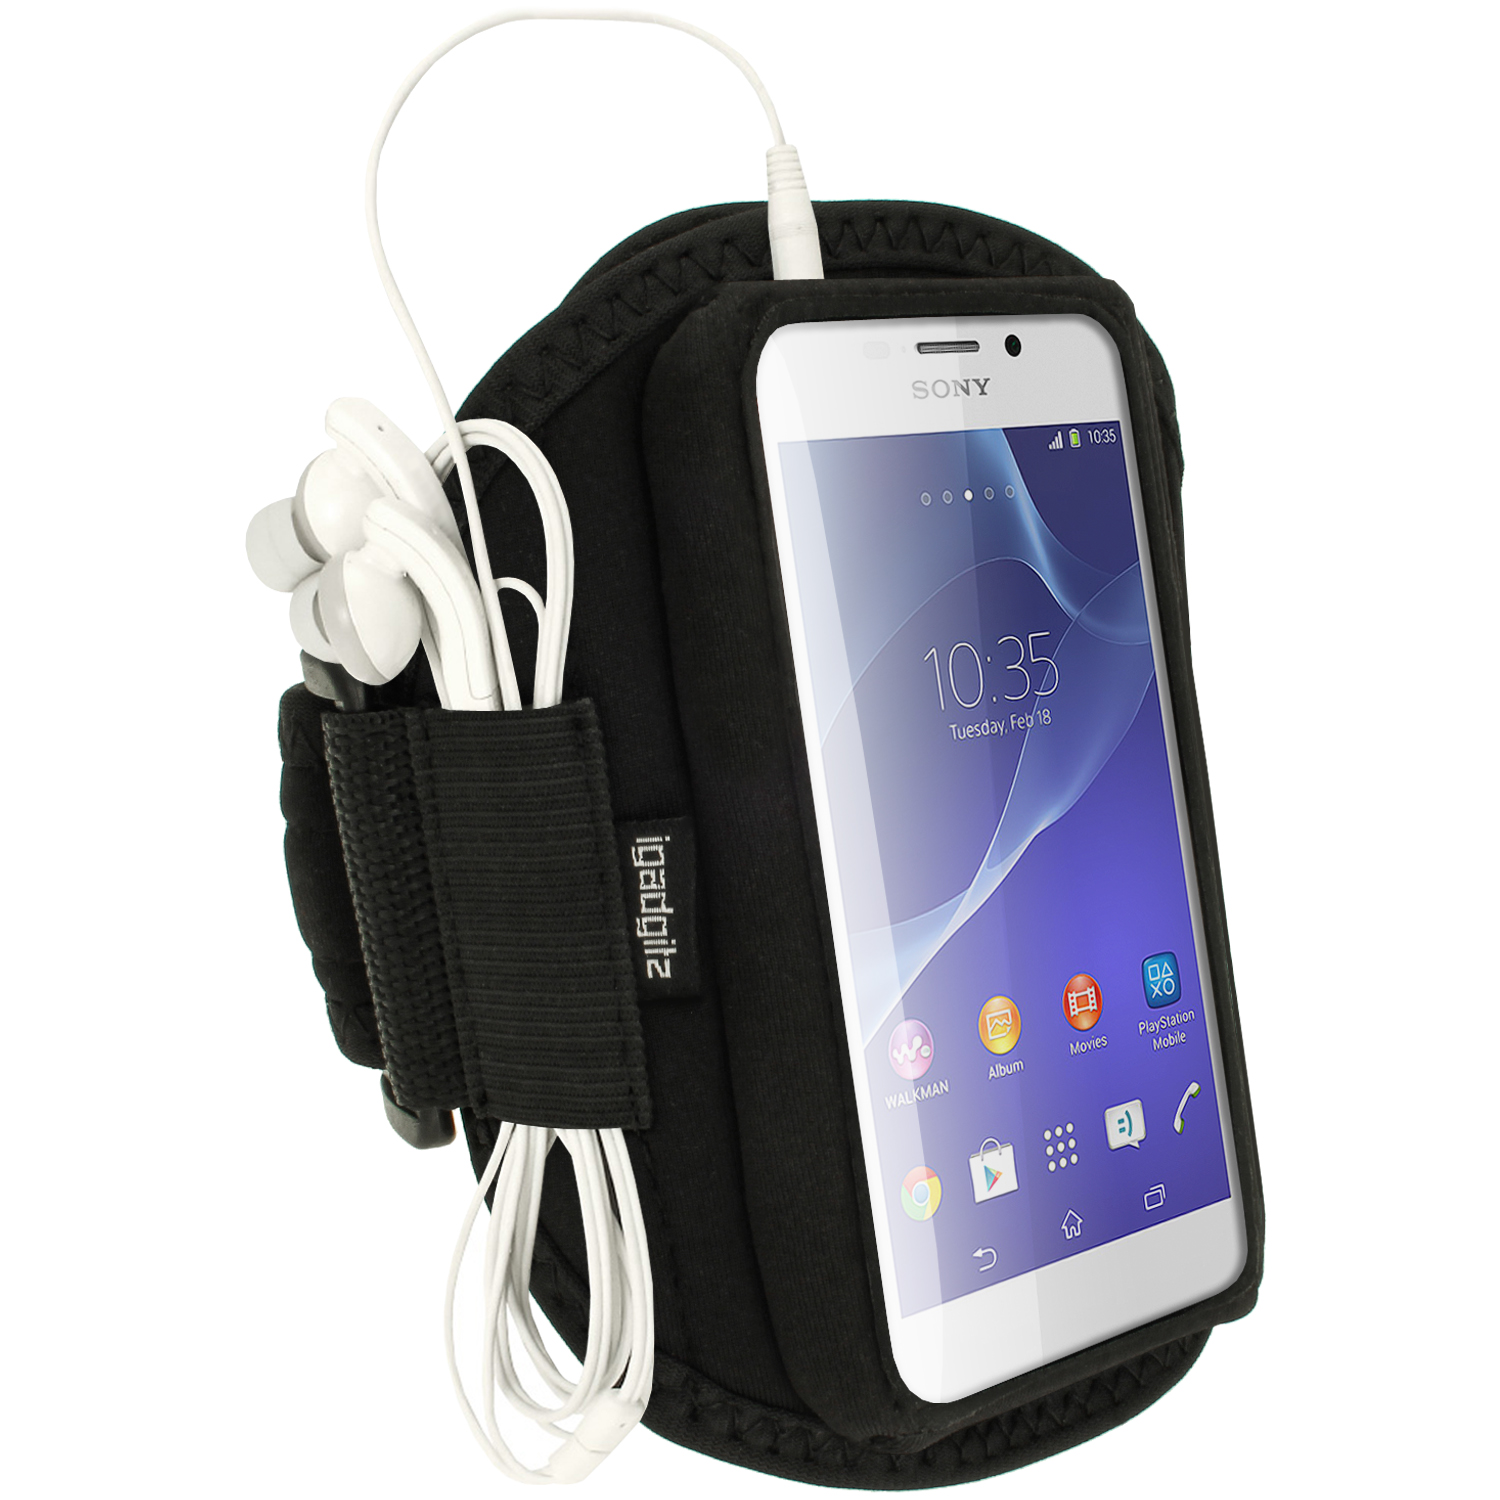 sports armband fitness tasche f r sony xperia m2 d2303 joggen etui h lle case ebay. Black Bedroom Furniture Sets. Home Design Ideas